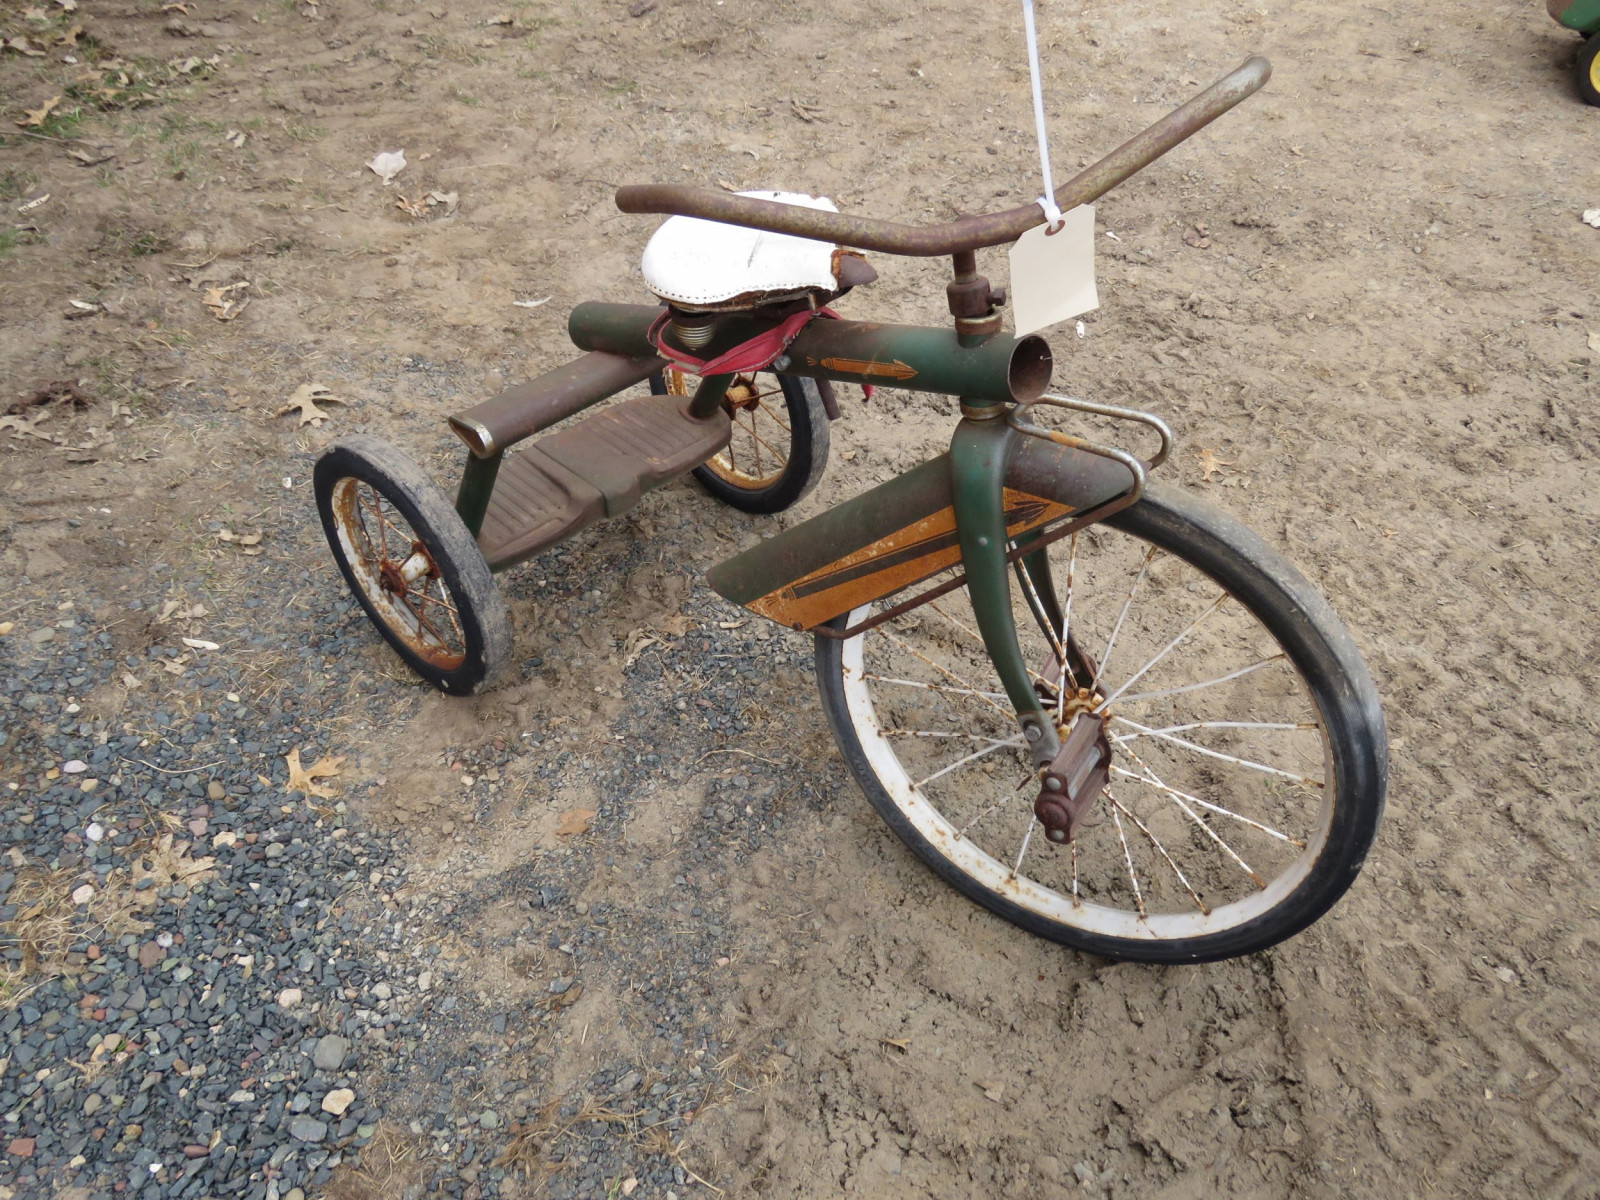 Vintage Tricycle with Wagon - Image 2